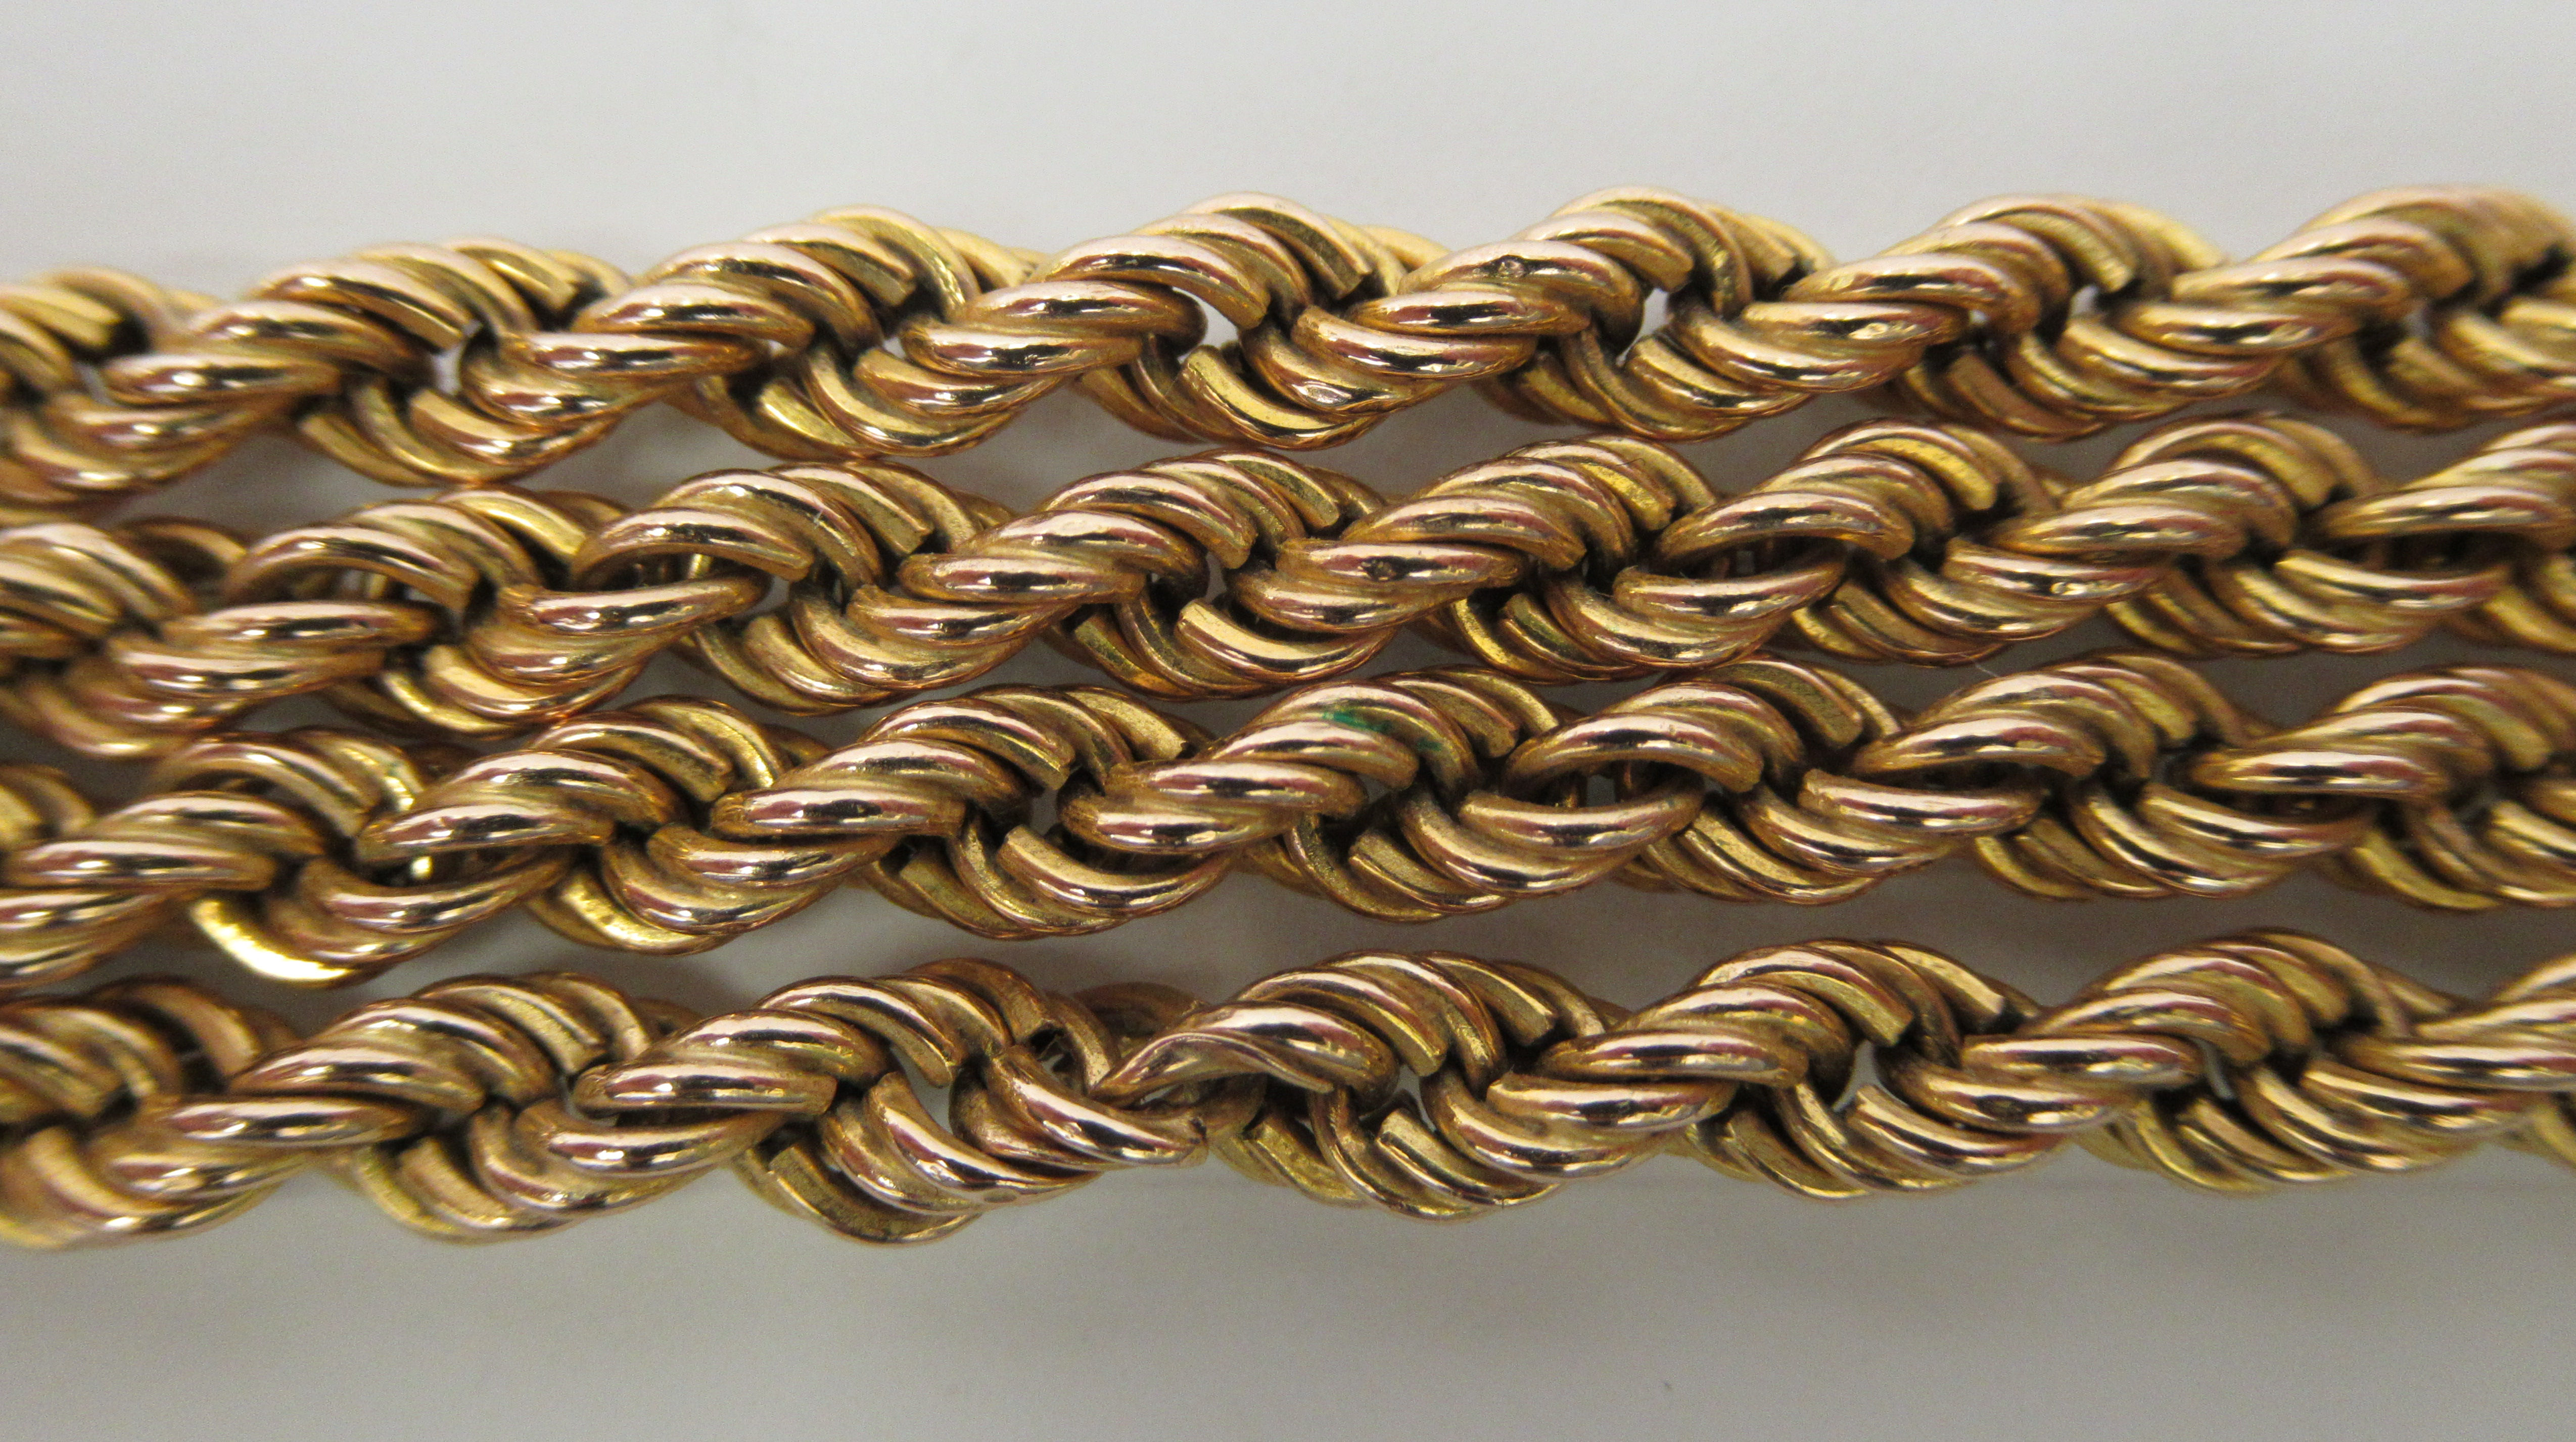 An Italian 9ct gold ropetwist design necklace - Image 2 of 3